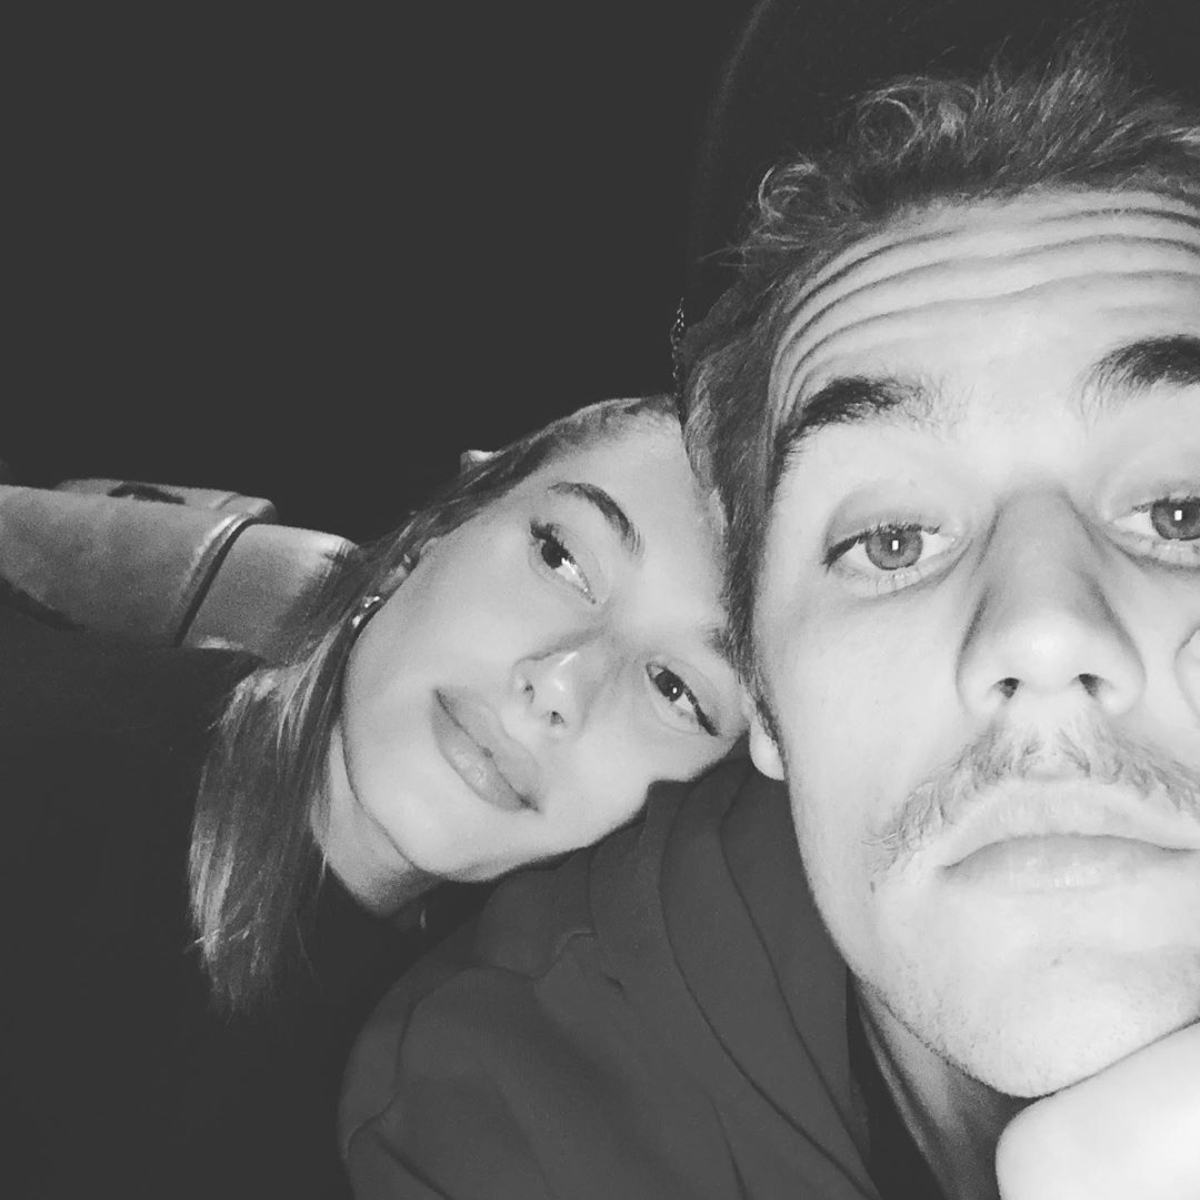 Justin Bieber's Saturday Thoughts is dedicated to his 'rewarding' marriage with Hailey Baldwin